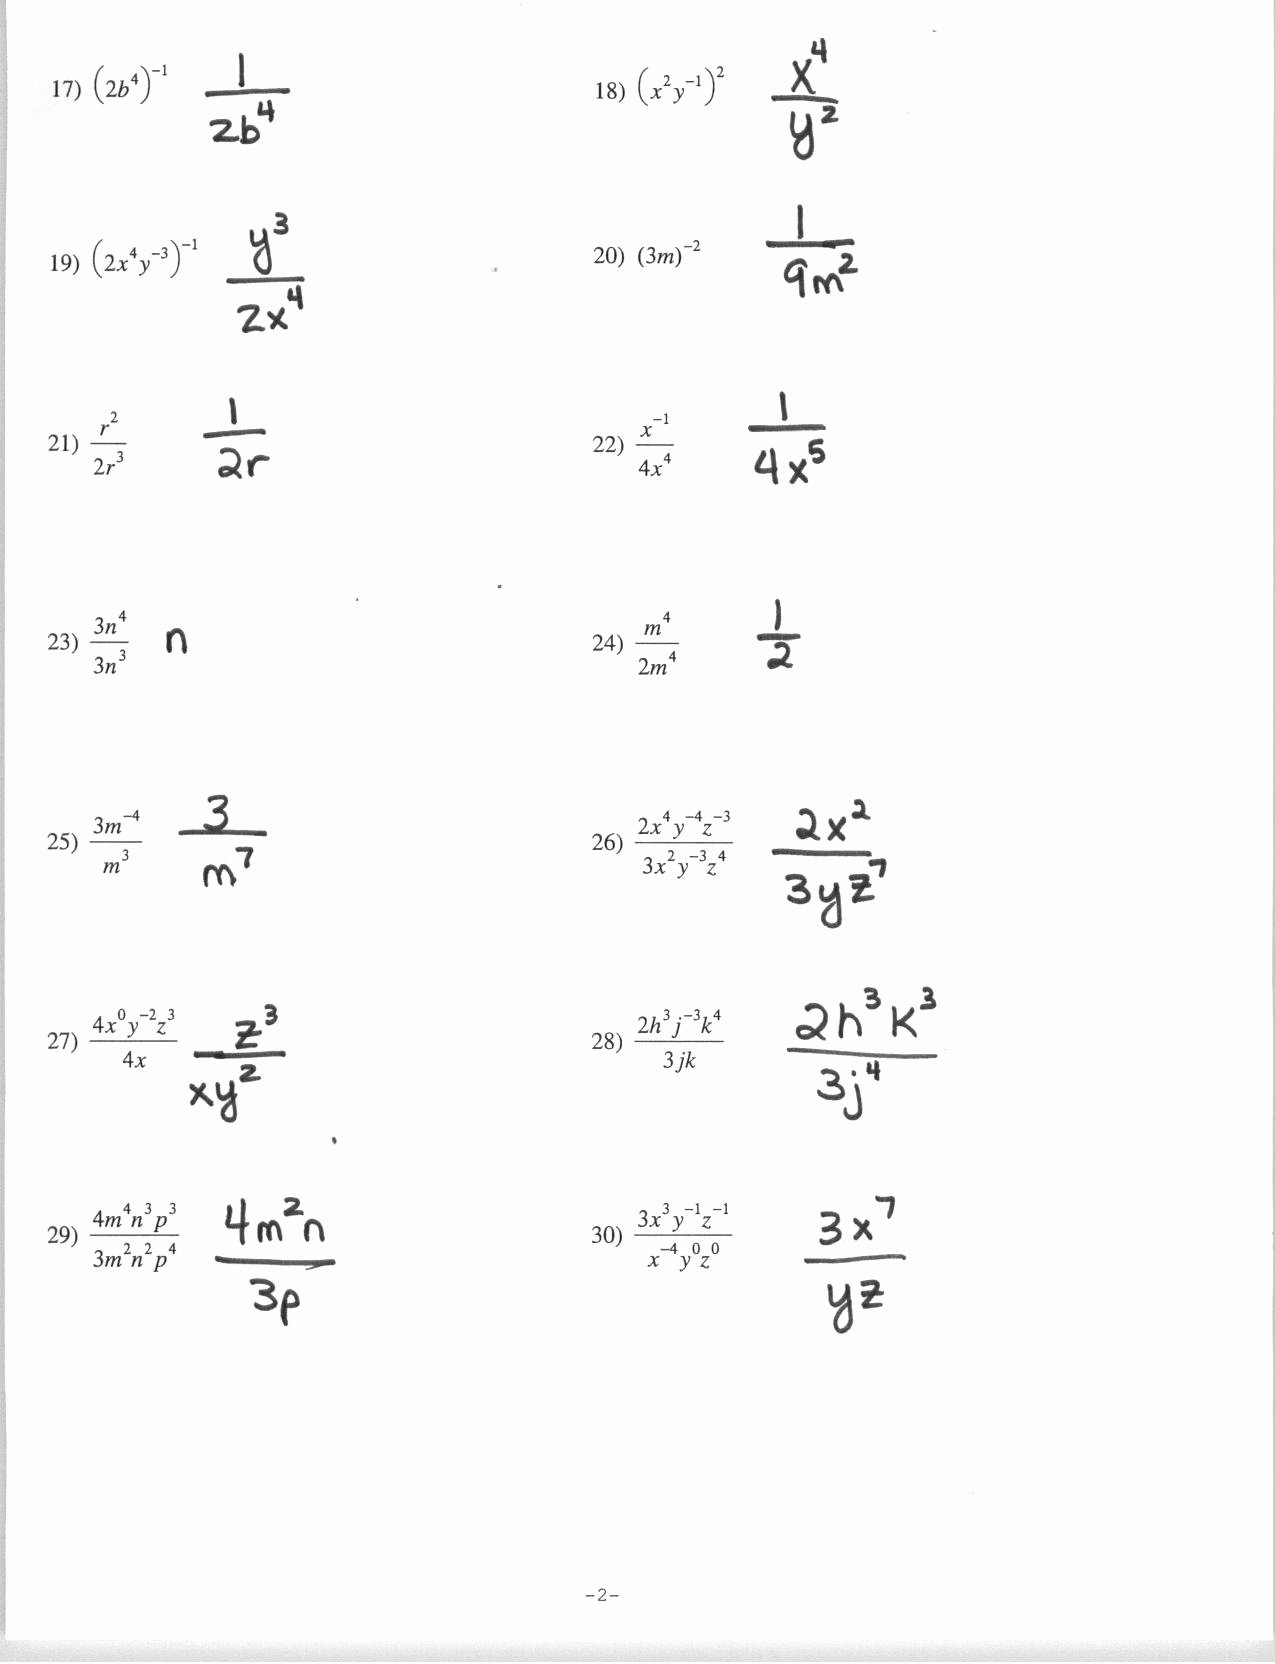 Simplifying Rational Exponents Worksheet Fresh 12 Best Of Rational Exponents Worksheets with